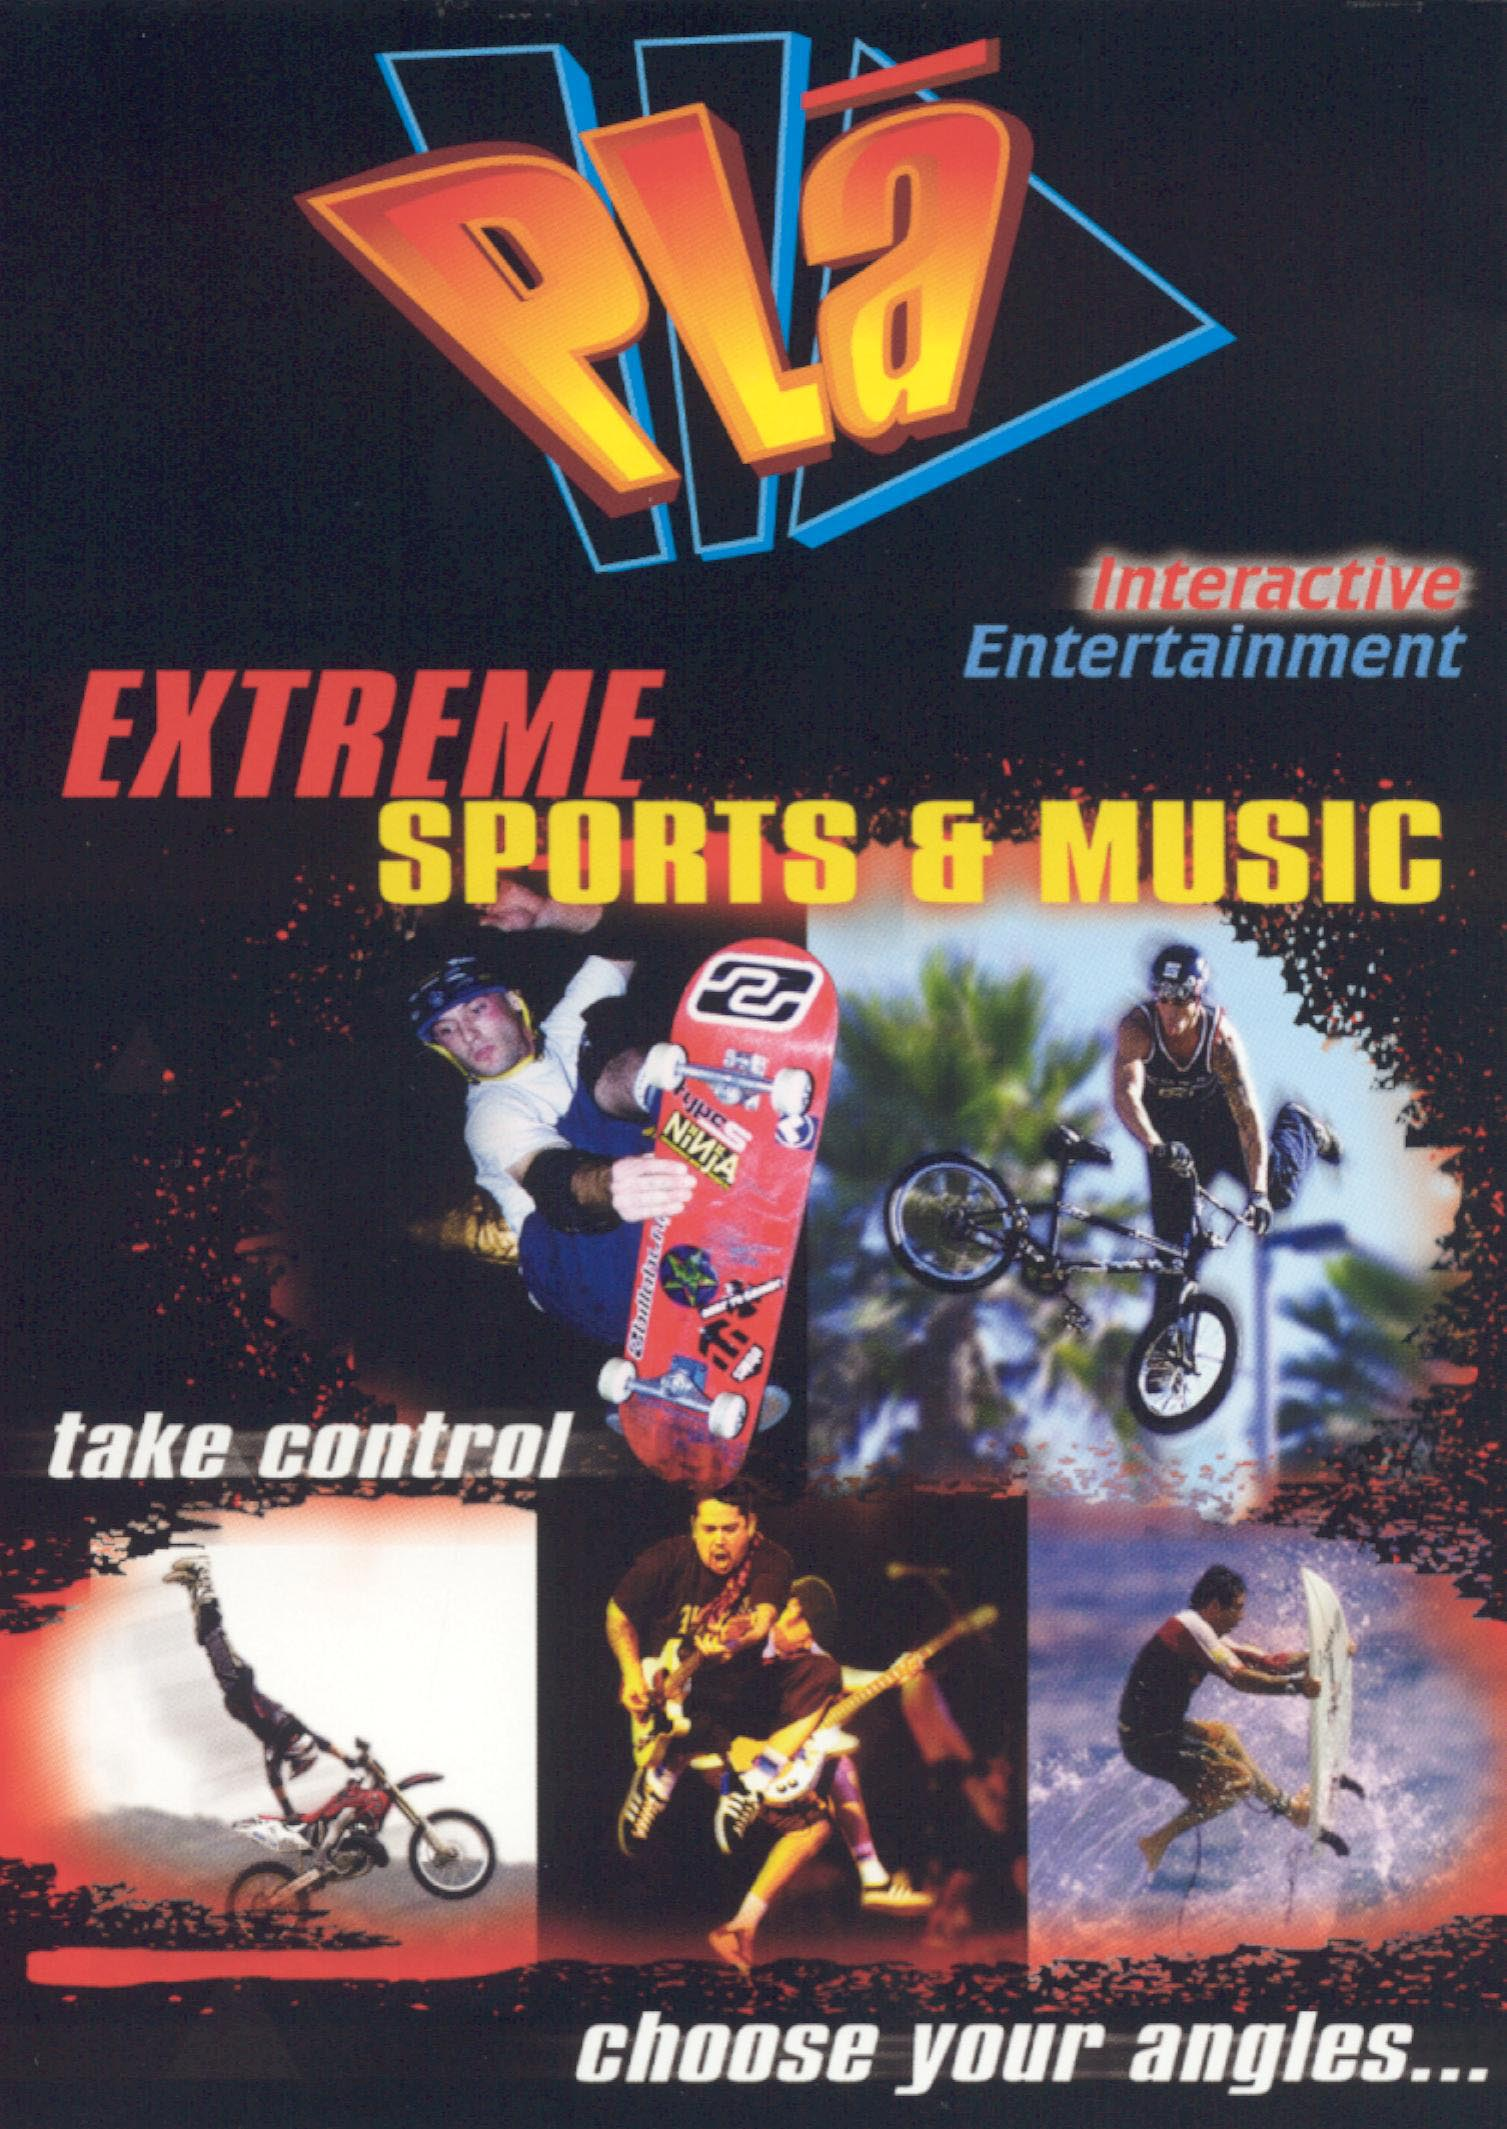 Pla: Extreme Sports & Music